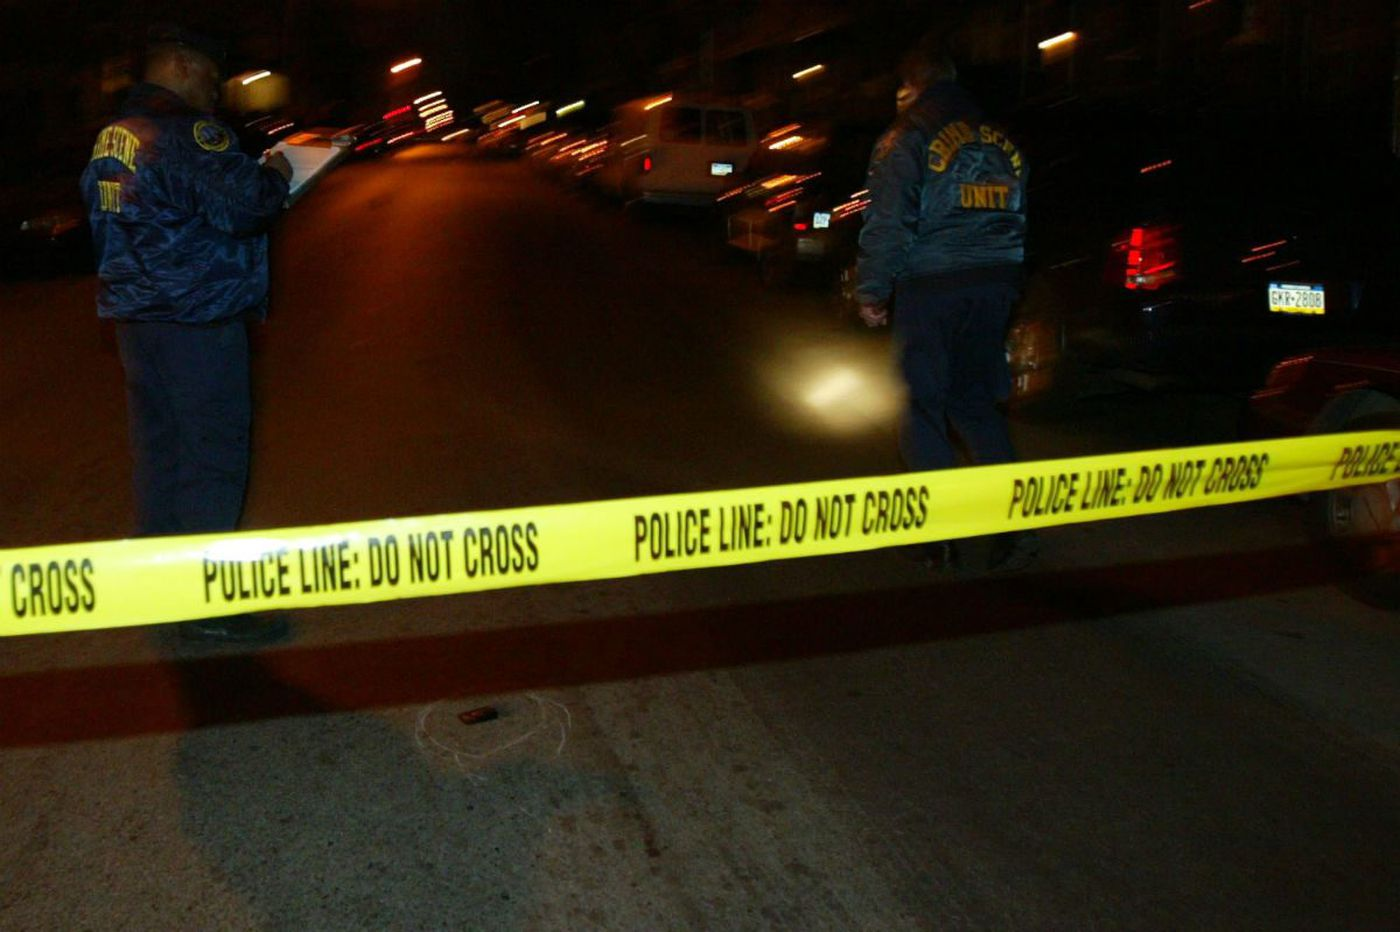 2 shot dead in Philly early Tuesday